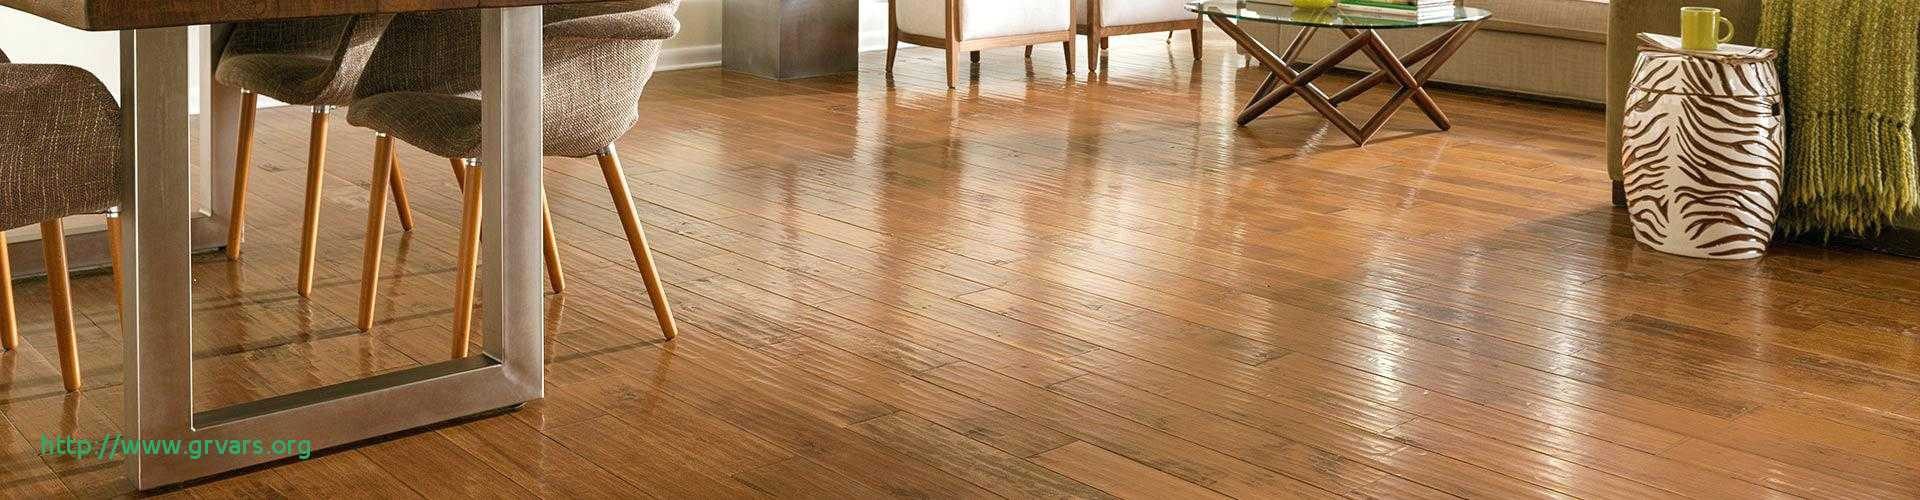 how to install 3 4 hardwood flooring of how much does lowes charge to install hardwood flooring inspirant od inside how much does lowes charge to install hardwood flooring inspirant od grain tile bathroom wood shower no grout porcelain pros and cons